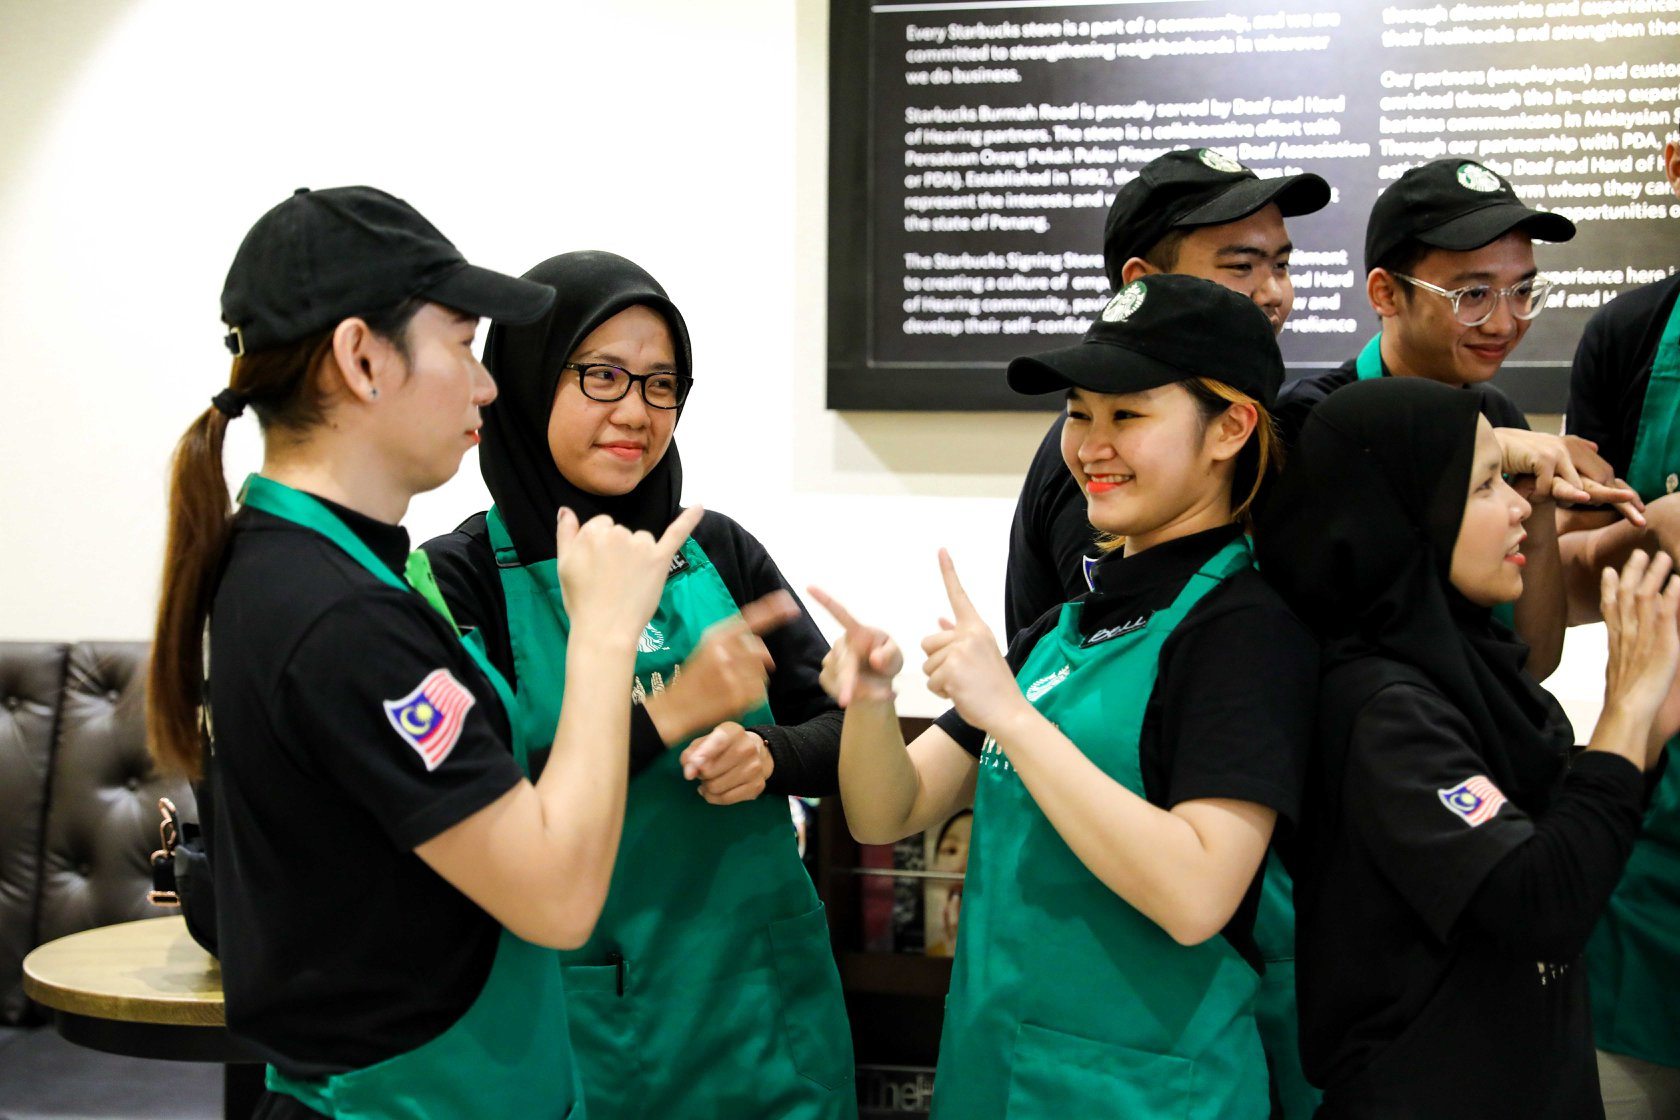 Starbucks staff signing each other